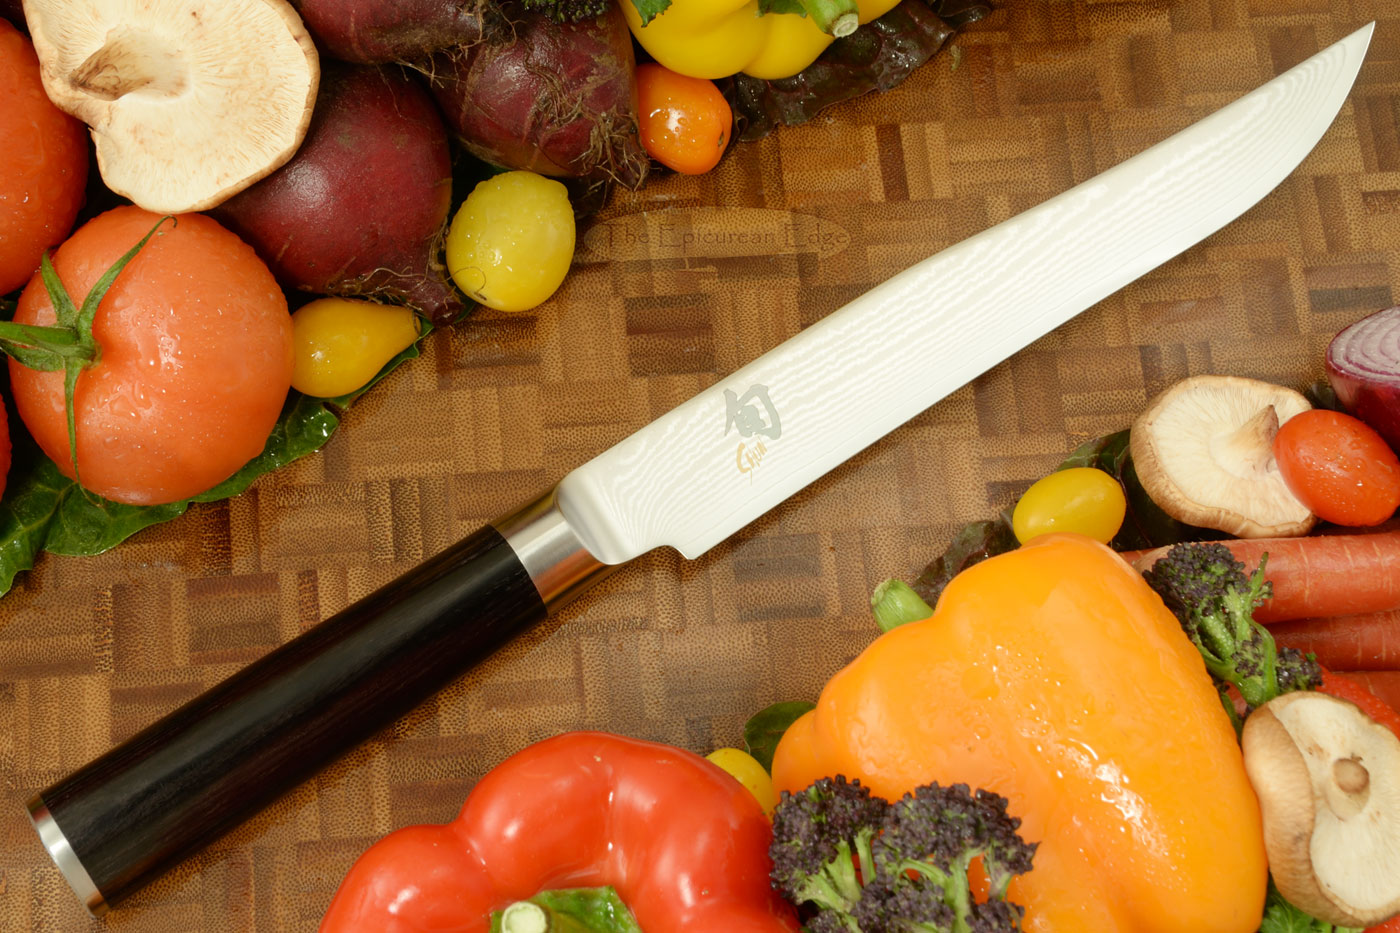 Shun Classic Carving Knife - 8 in. (DM0703)